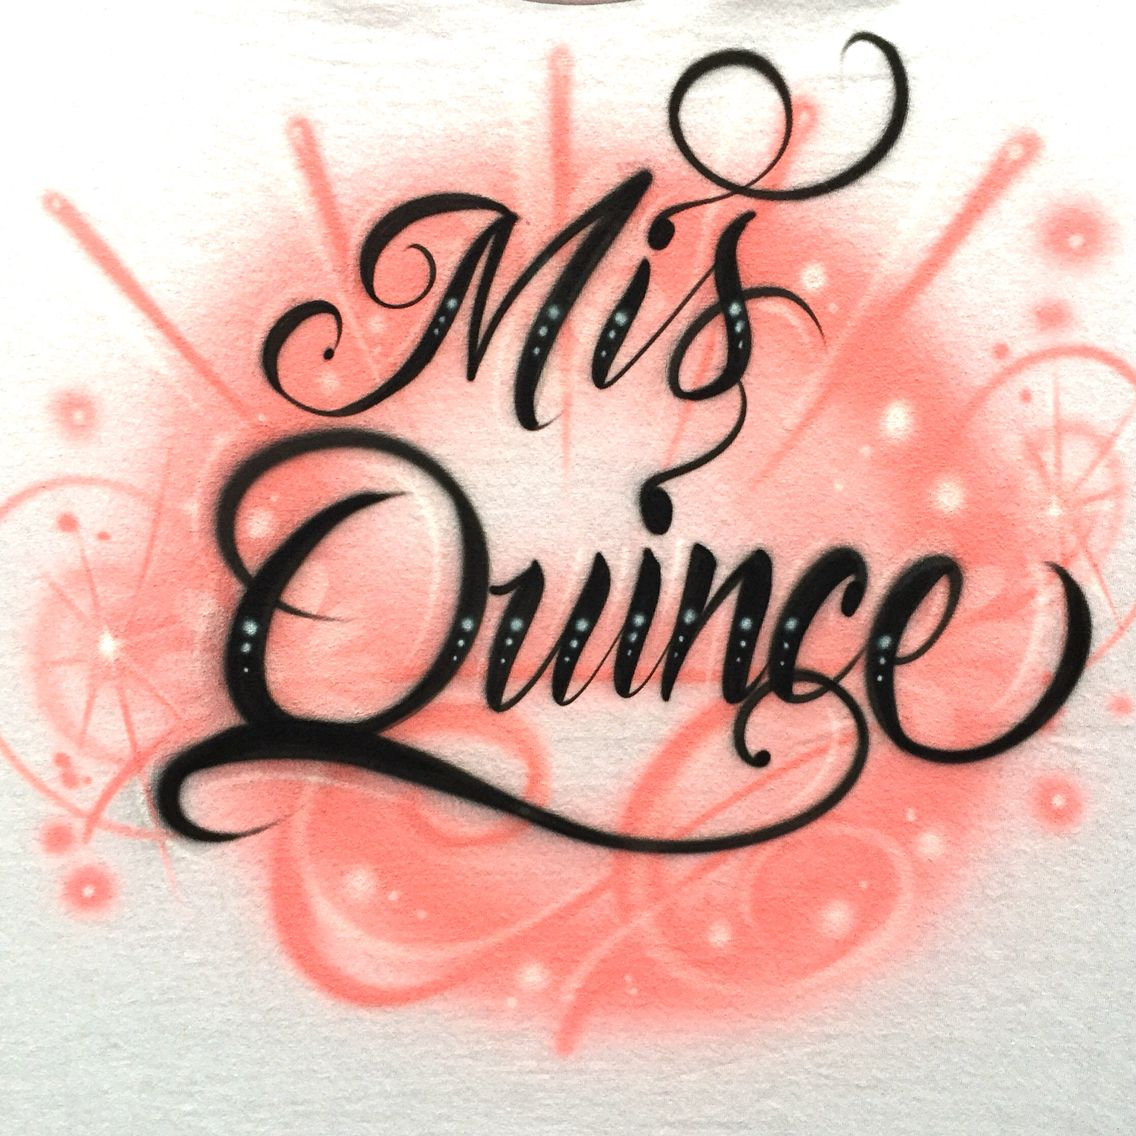 Quinceaera airbrush shirts great for prevideos and baile quinceaera airbrush shirts great for prevideos and baile sorpresa we even match the color solutioingenieria Choice Image